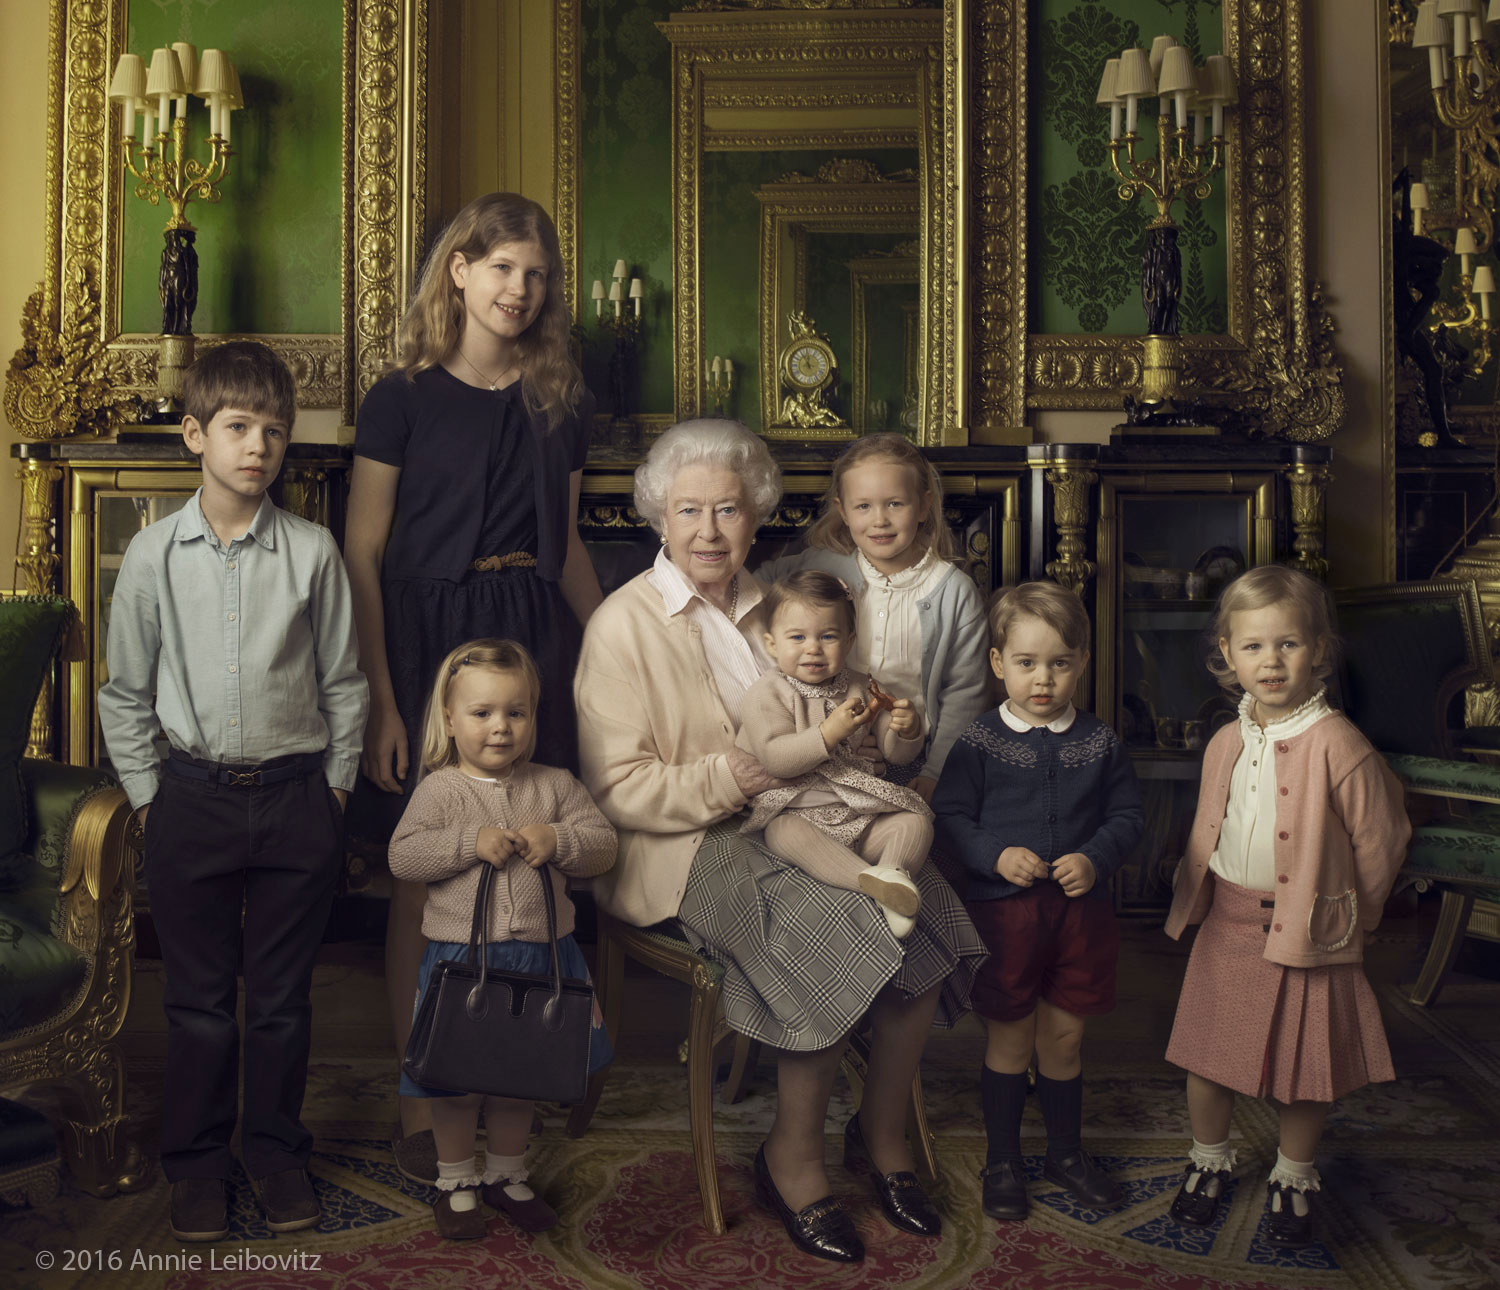 Official Photographs Released For The Queens 90th Birthday